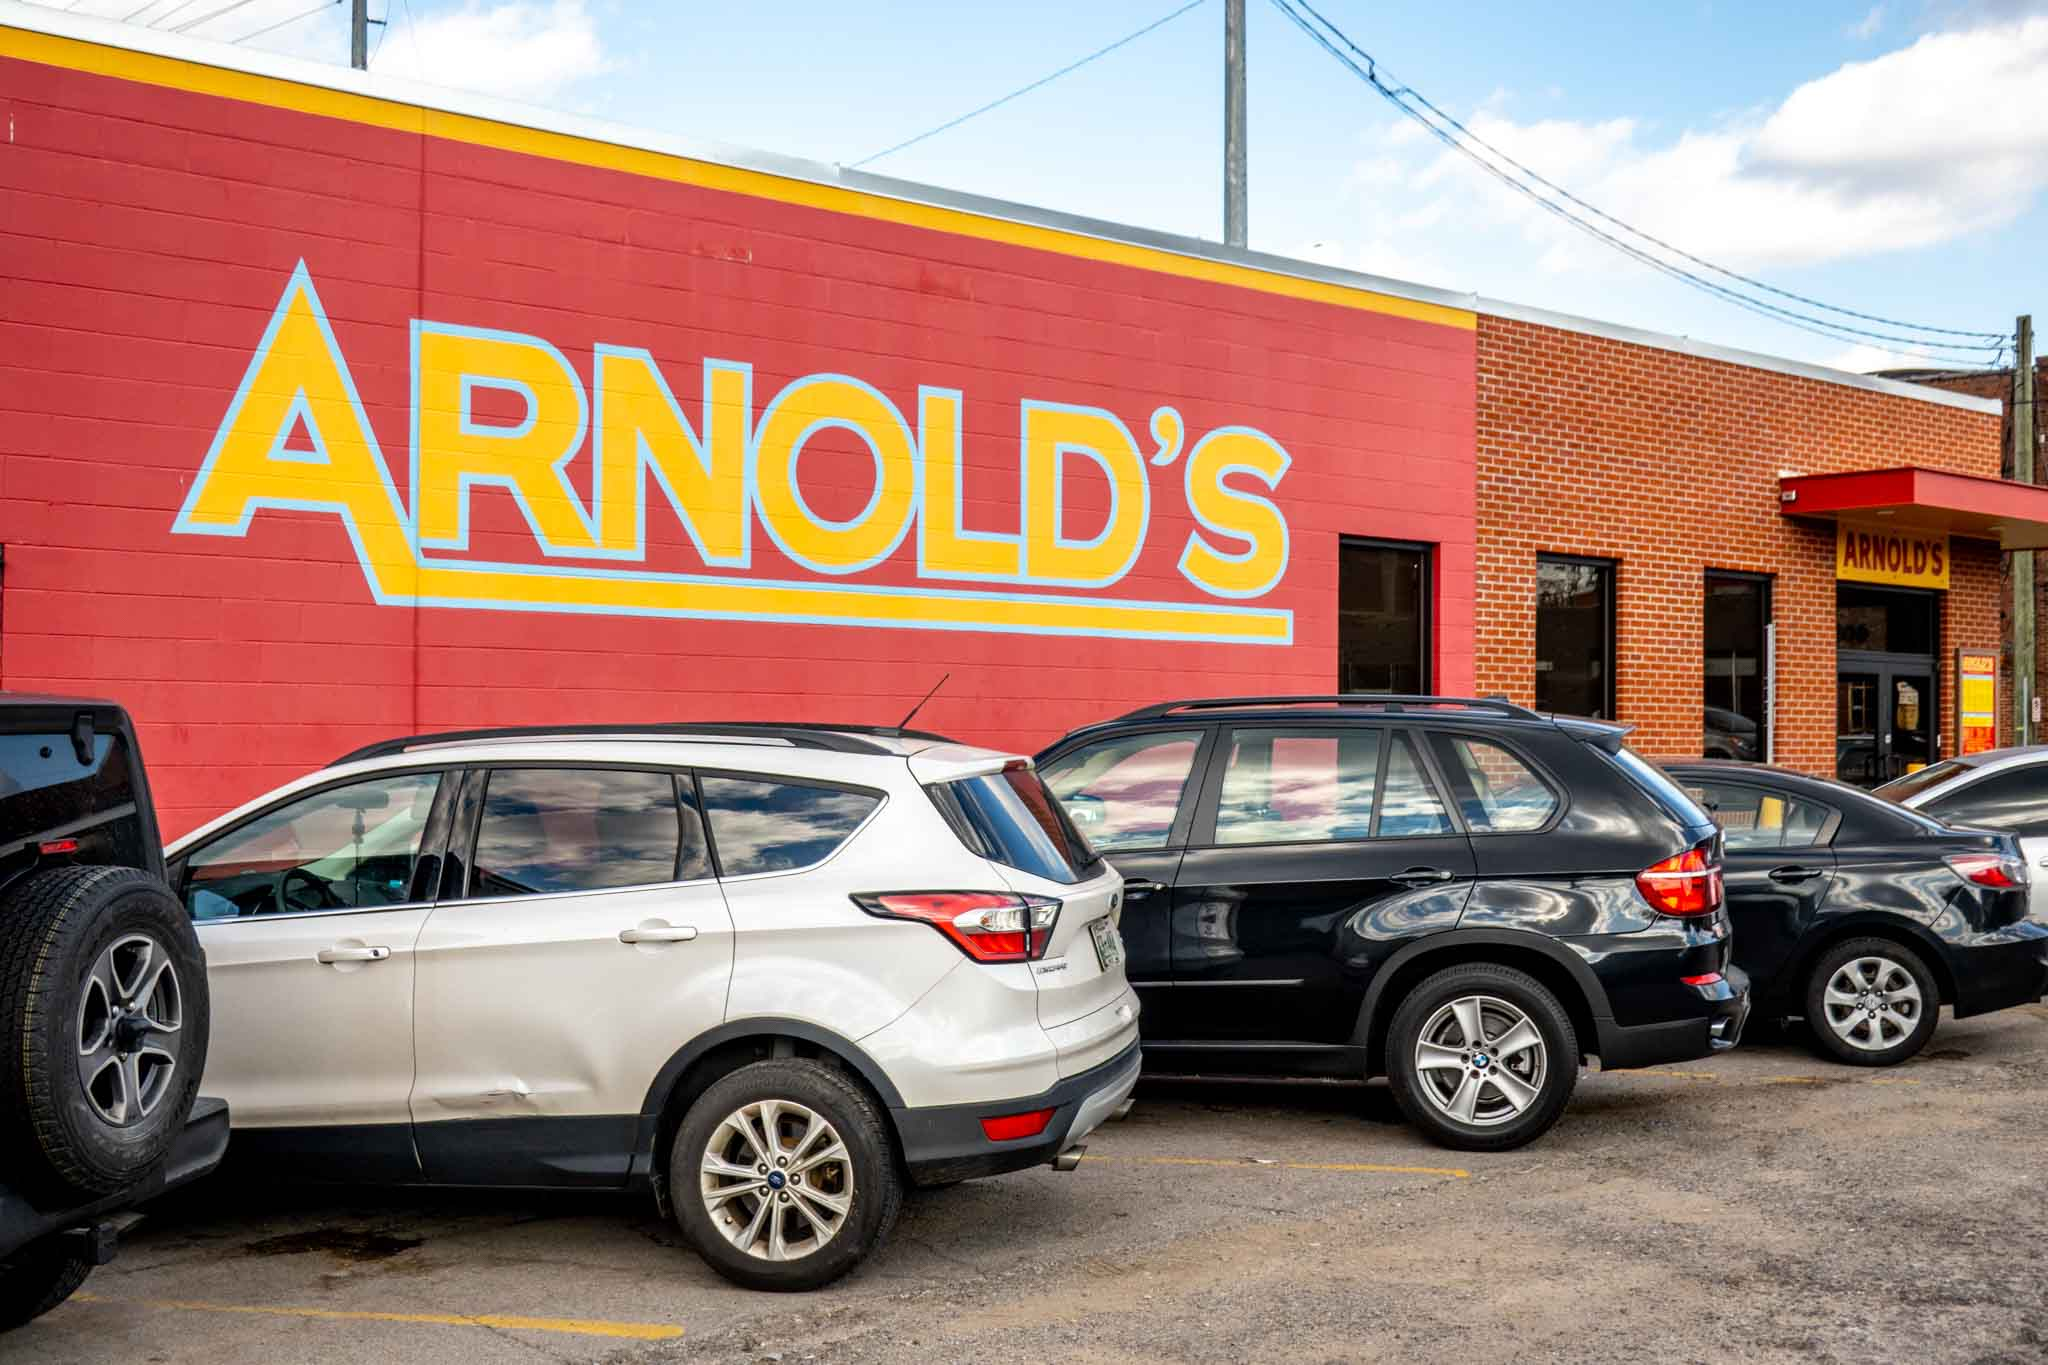 Yellow and red sign for Arnold's restaurant pained on a brick wall